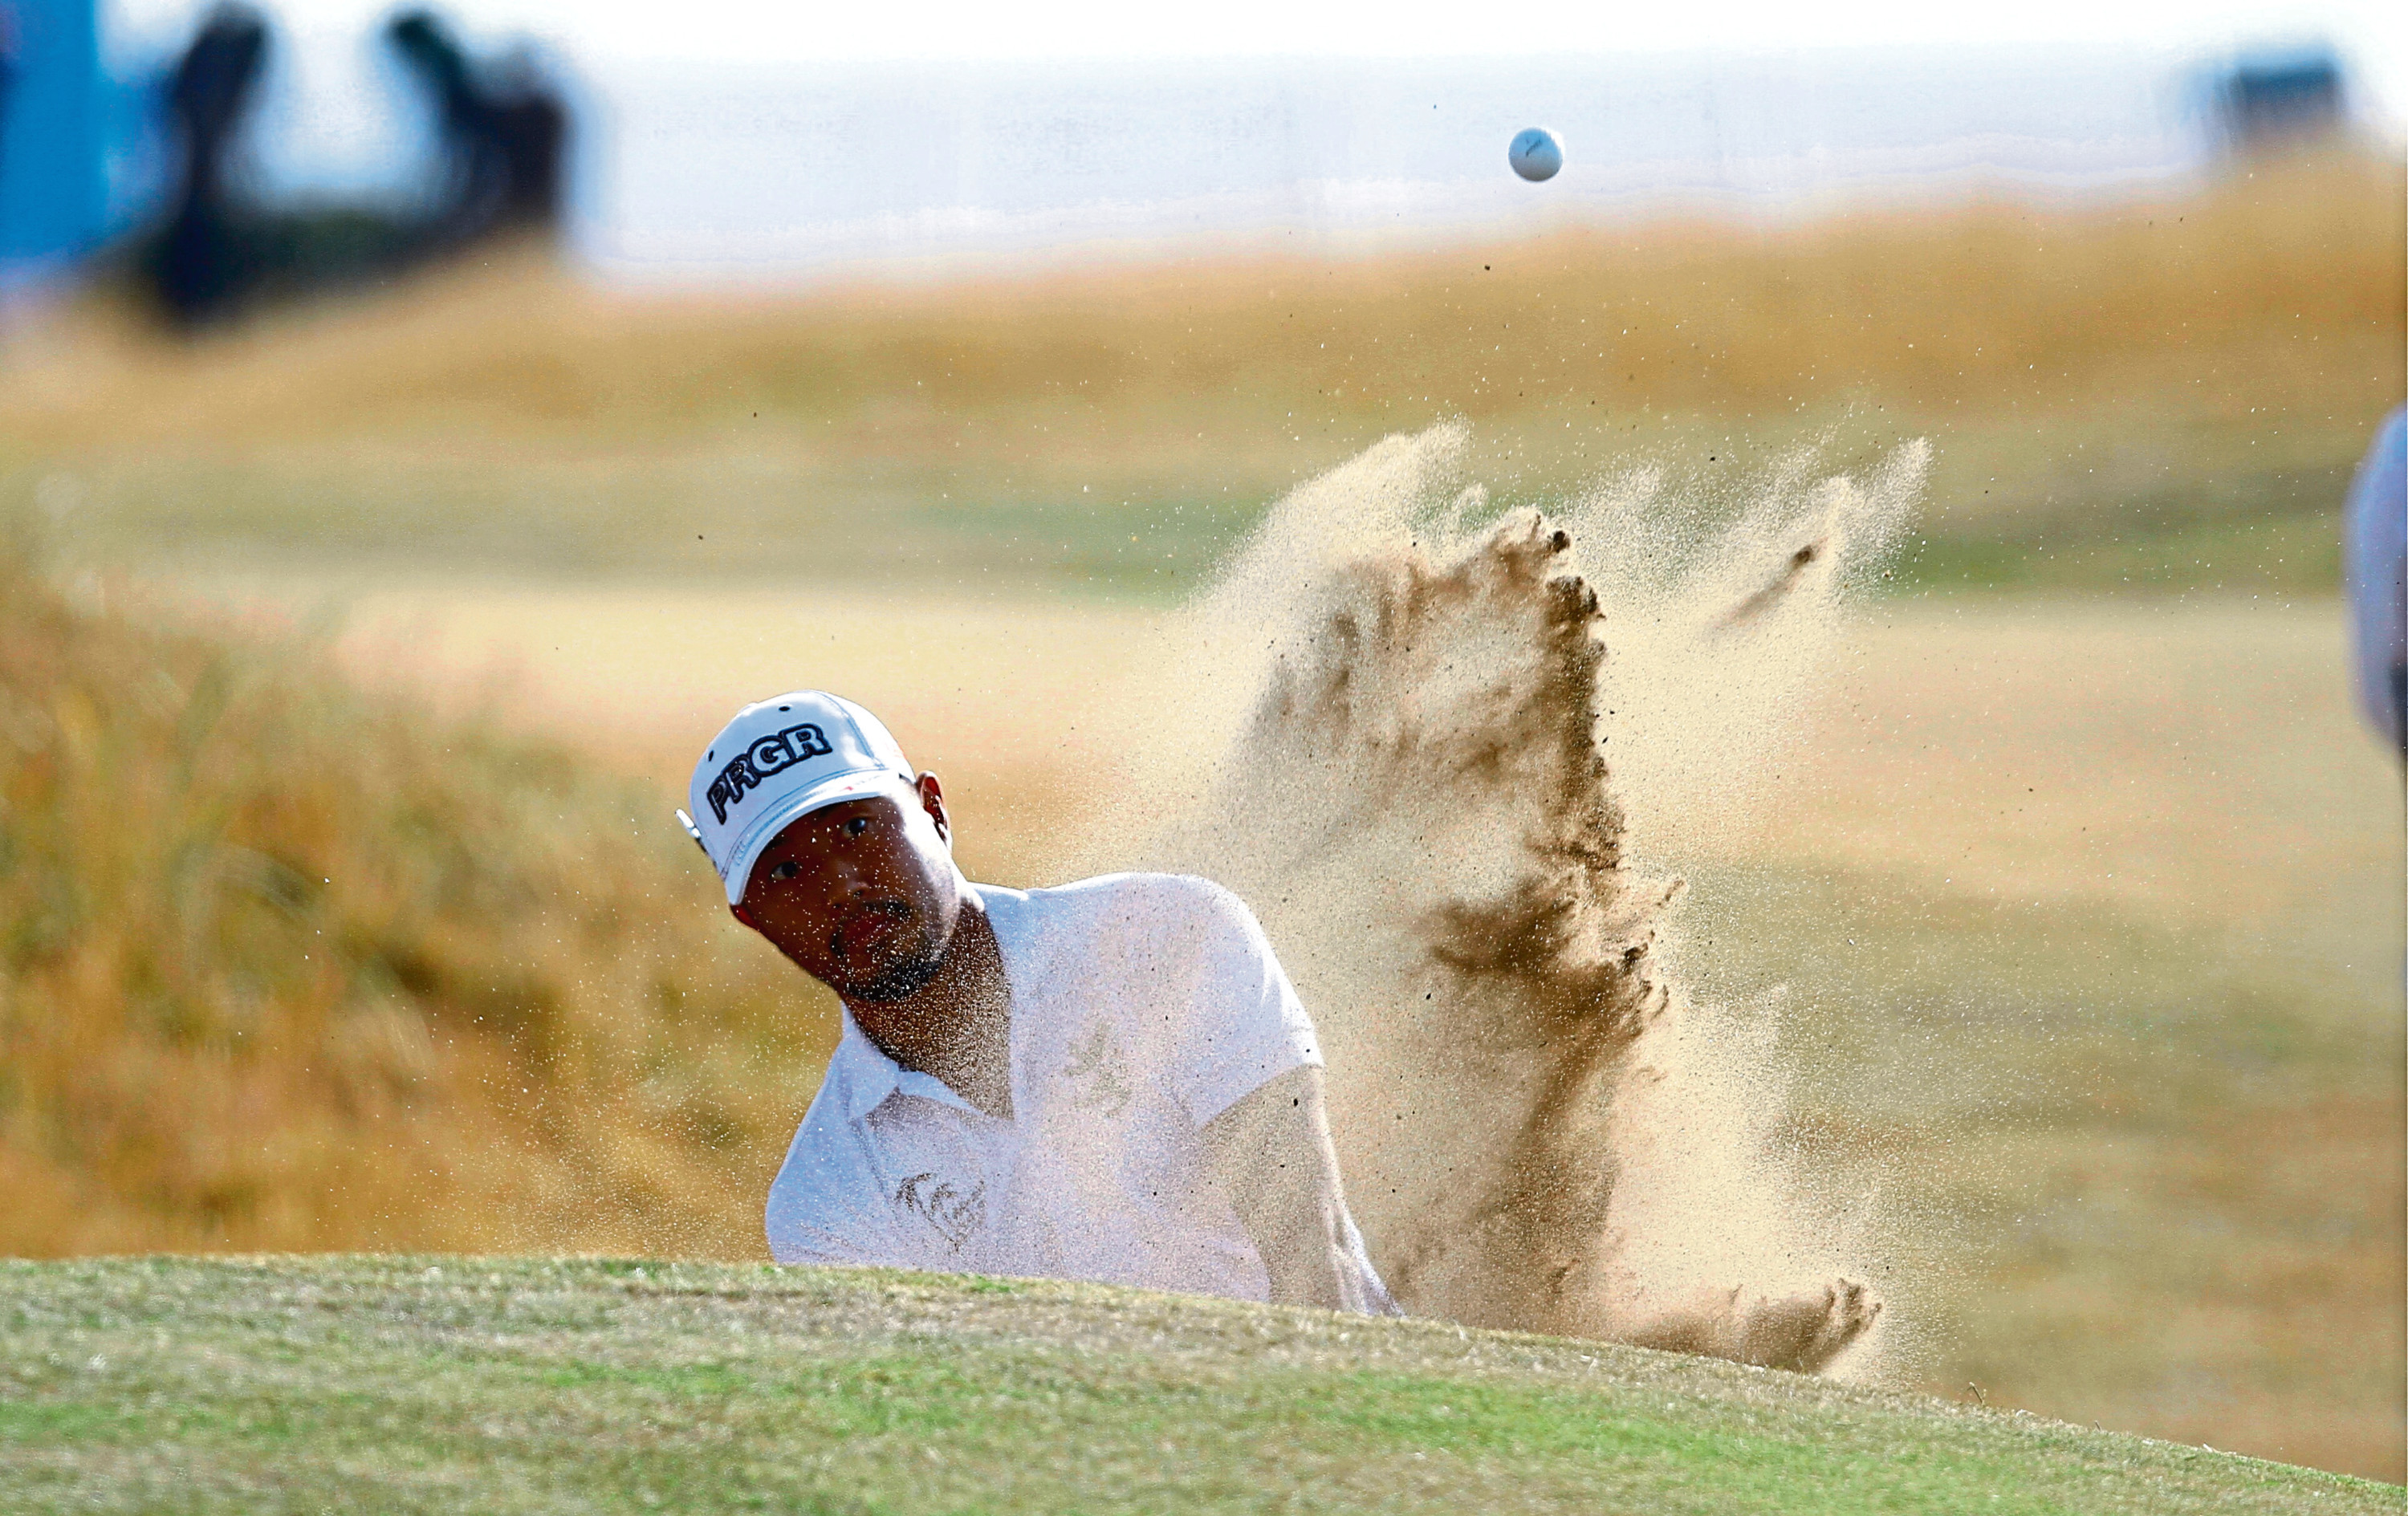 Courier News/Sport - Steve Scott story - Open Golf.  CR000 Picture shows; Satoshi Kodaira from Japan, blasts out of a bunker of the first, at the first round of The Open Golf Championship at Carnoustie today. Thursday 19th July 2018